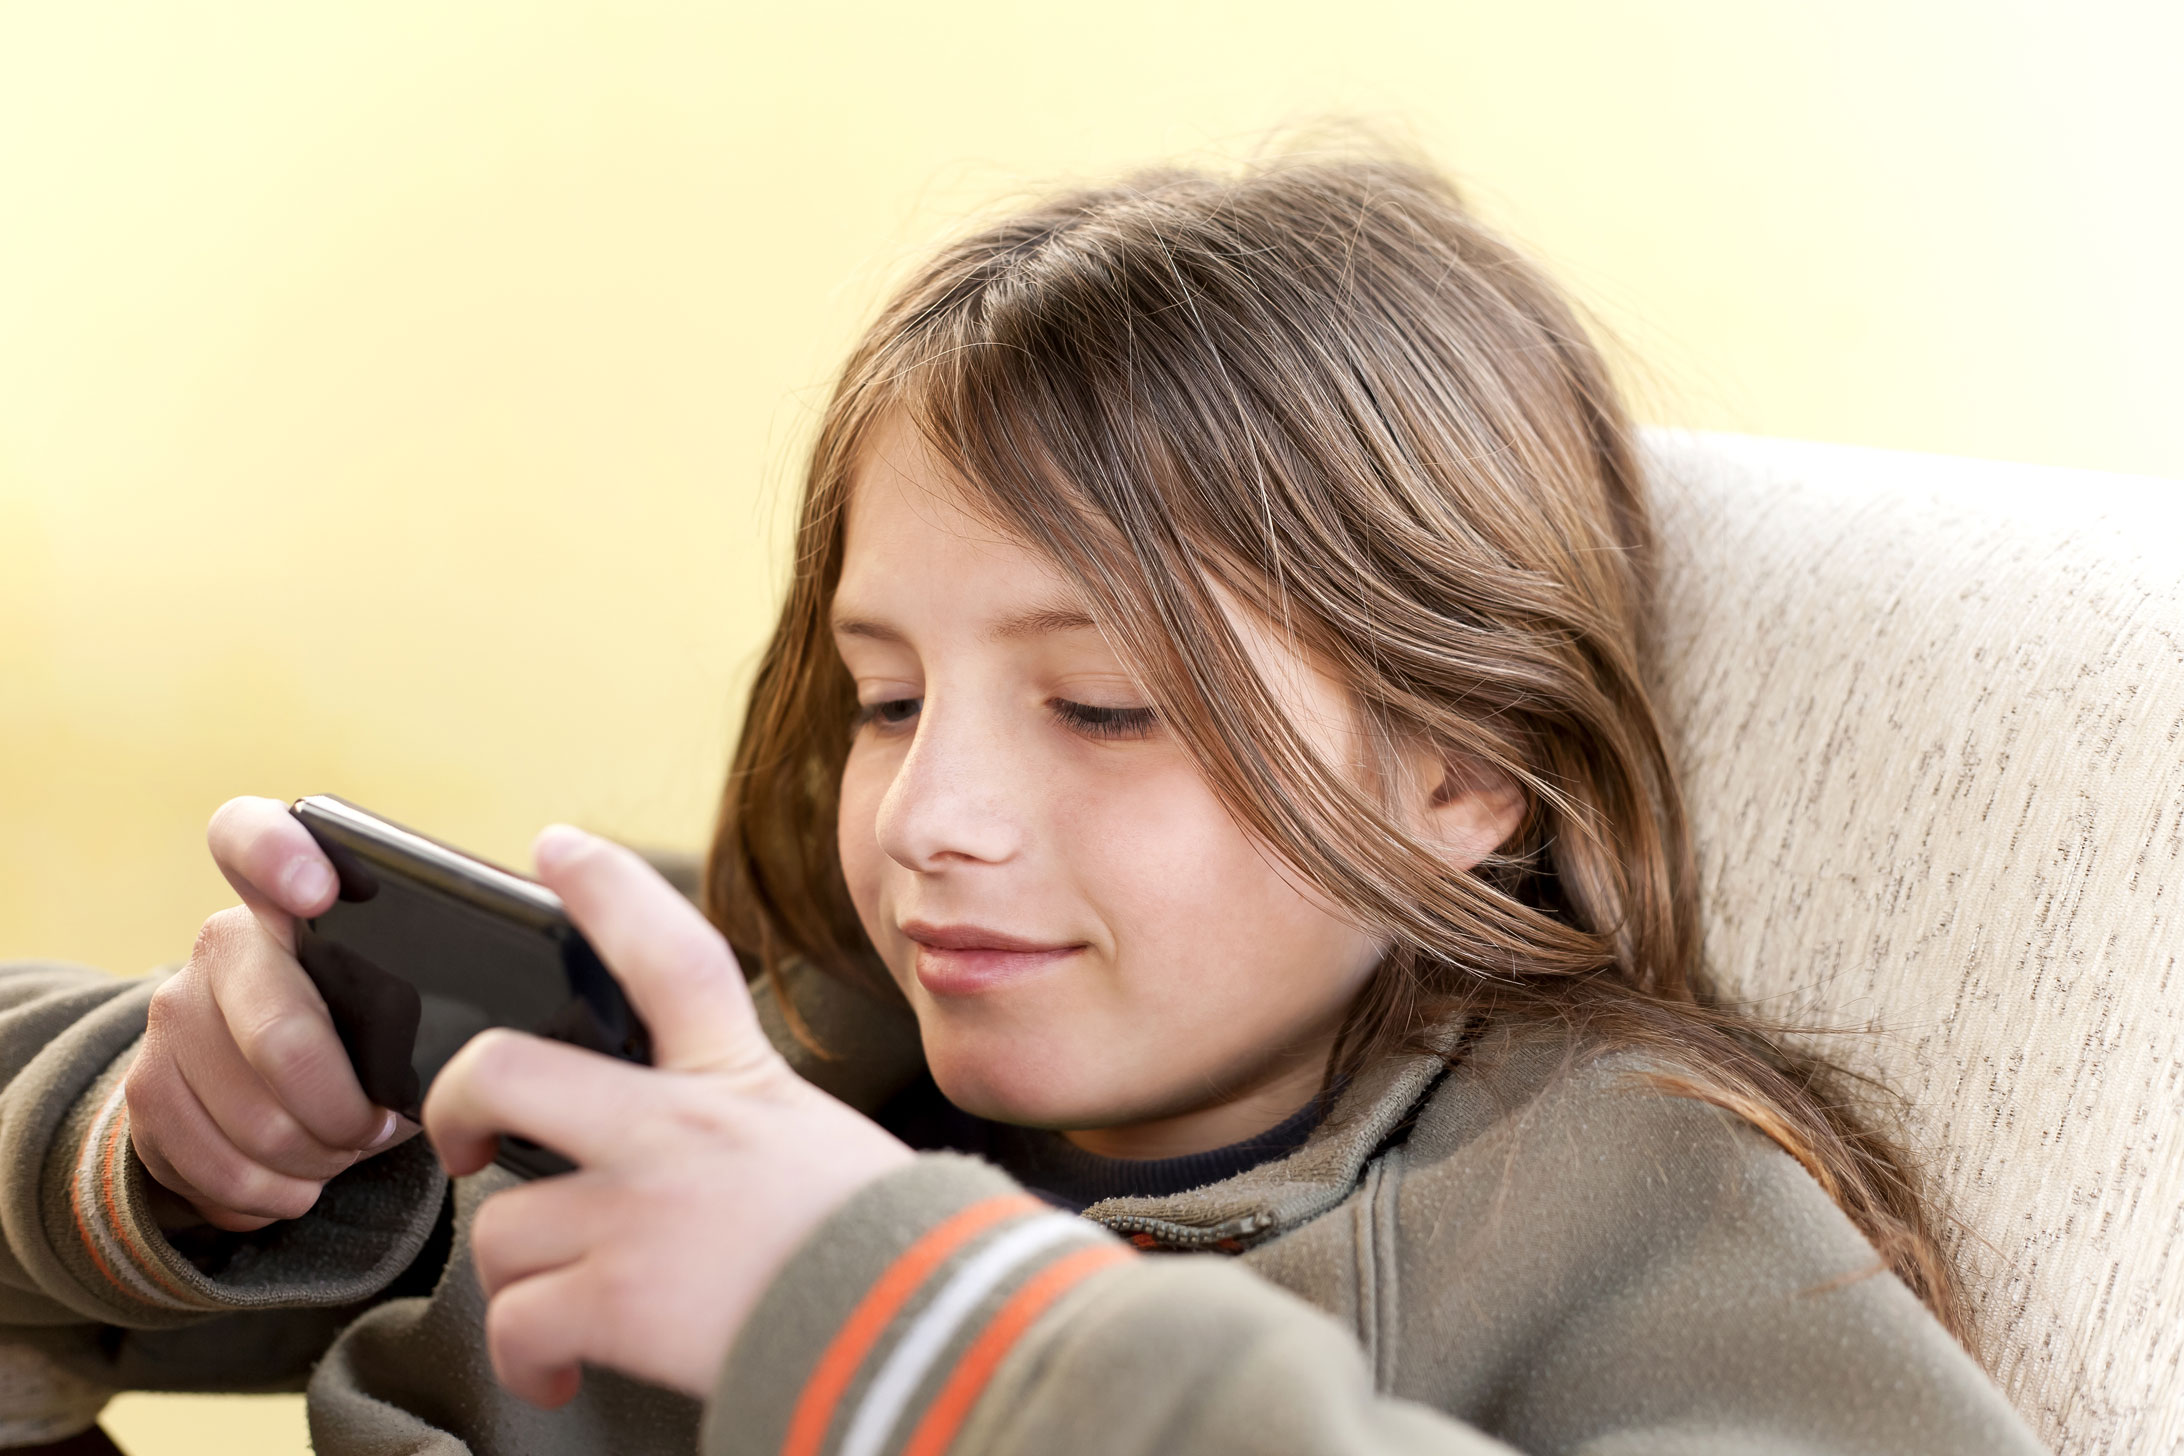 The average age for a child getting their first smartphone is now 10.3  years | TechCrunch